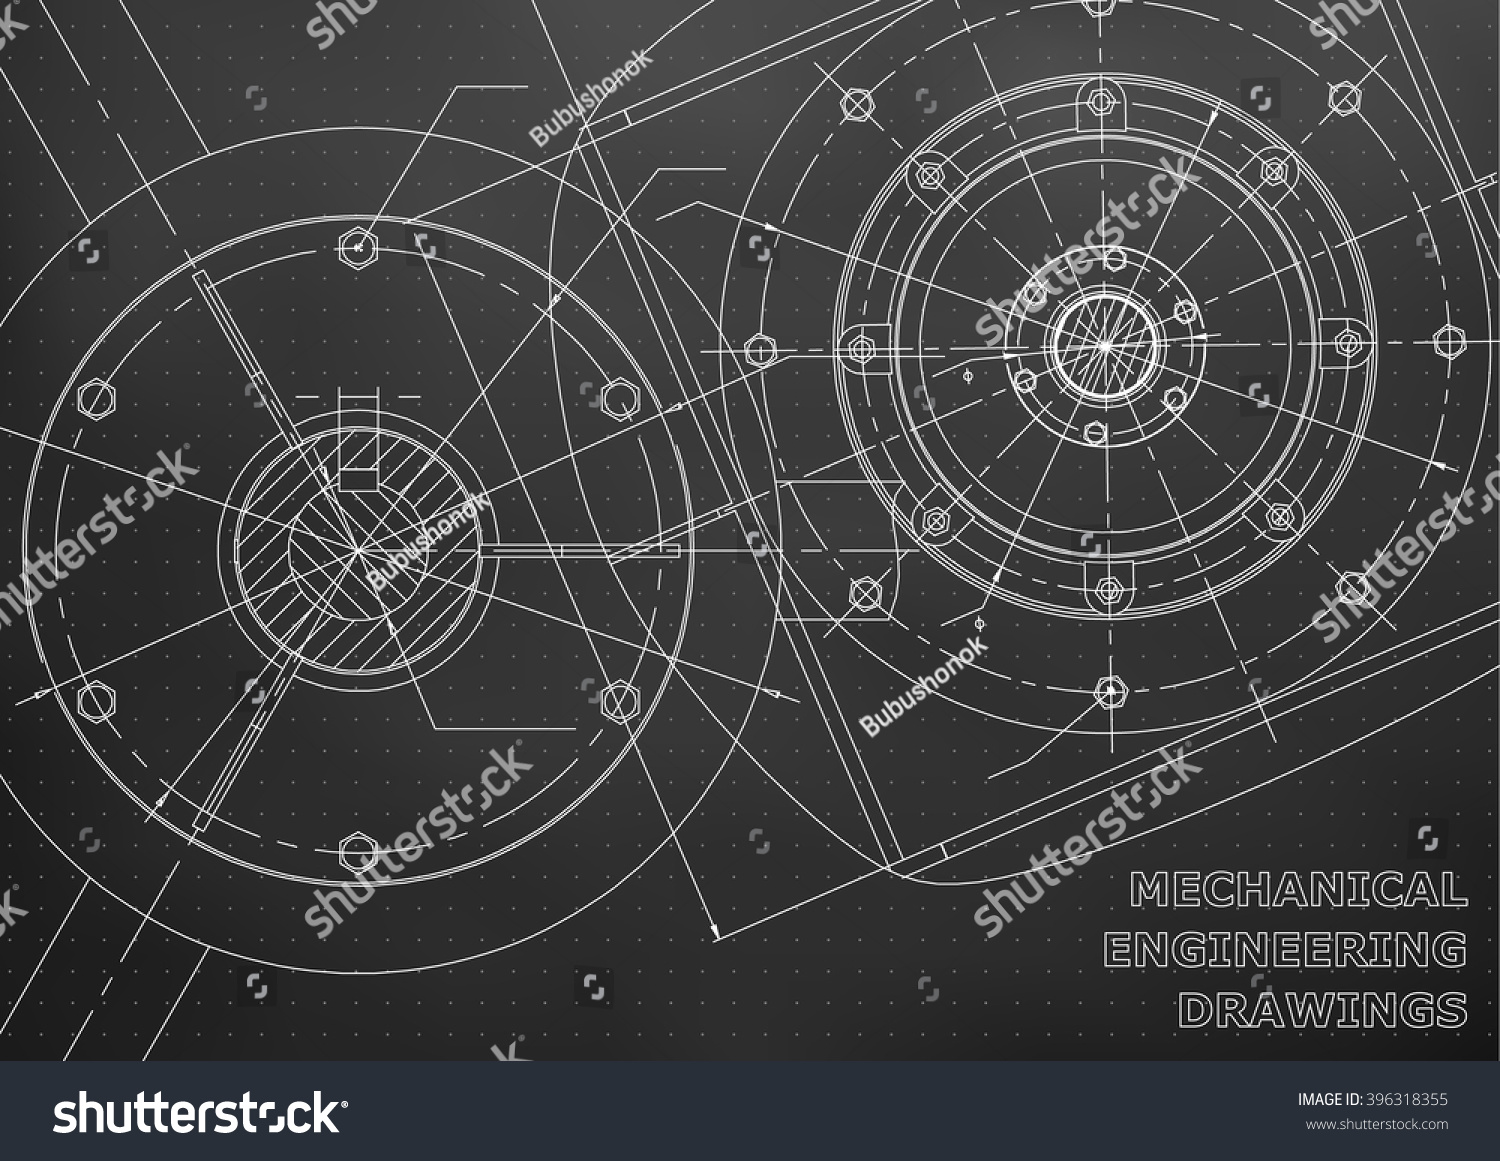 plot diagram outline 2004 chevy 1500 radio wiring mechanical engineering drawings background inscription vector stock 396318355 - shutterstock